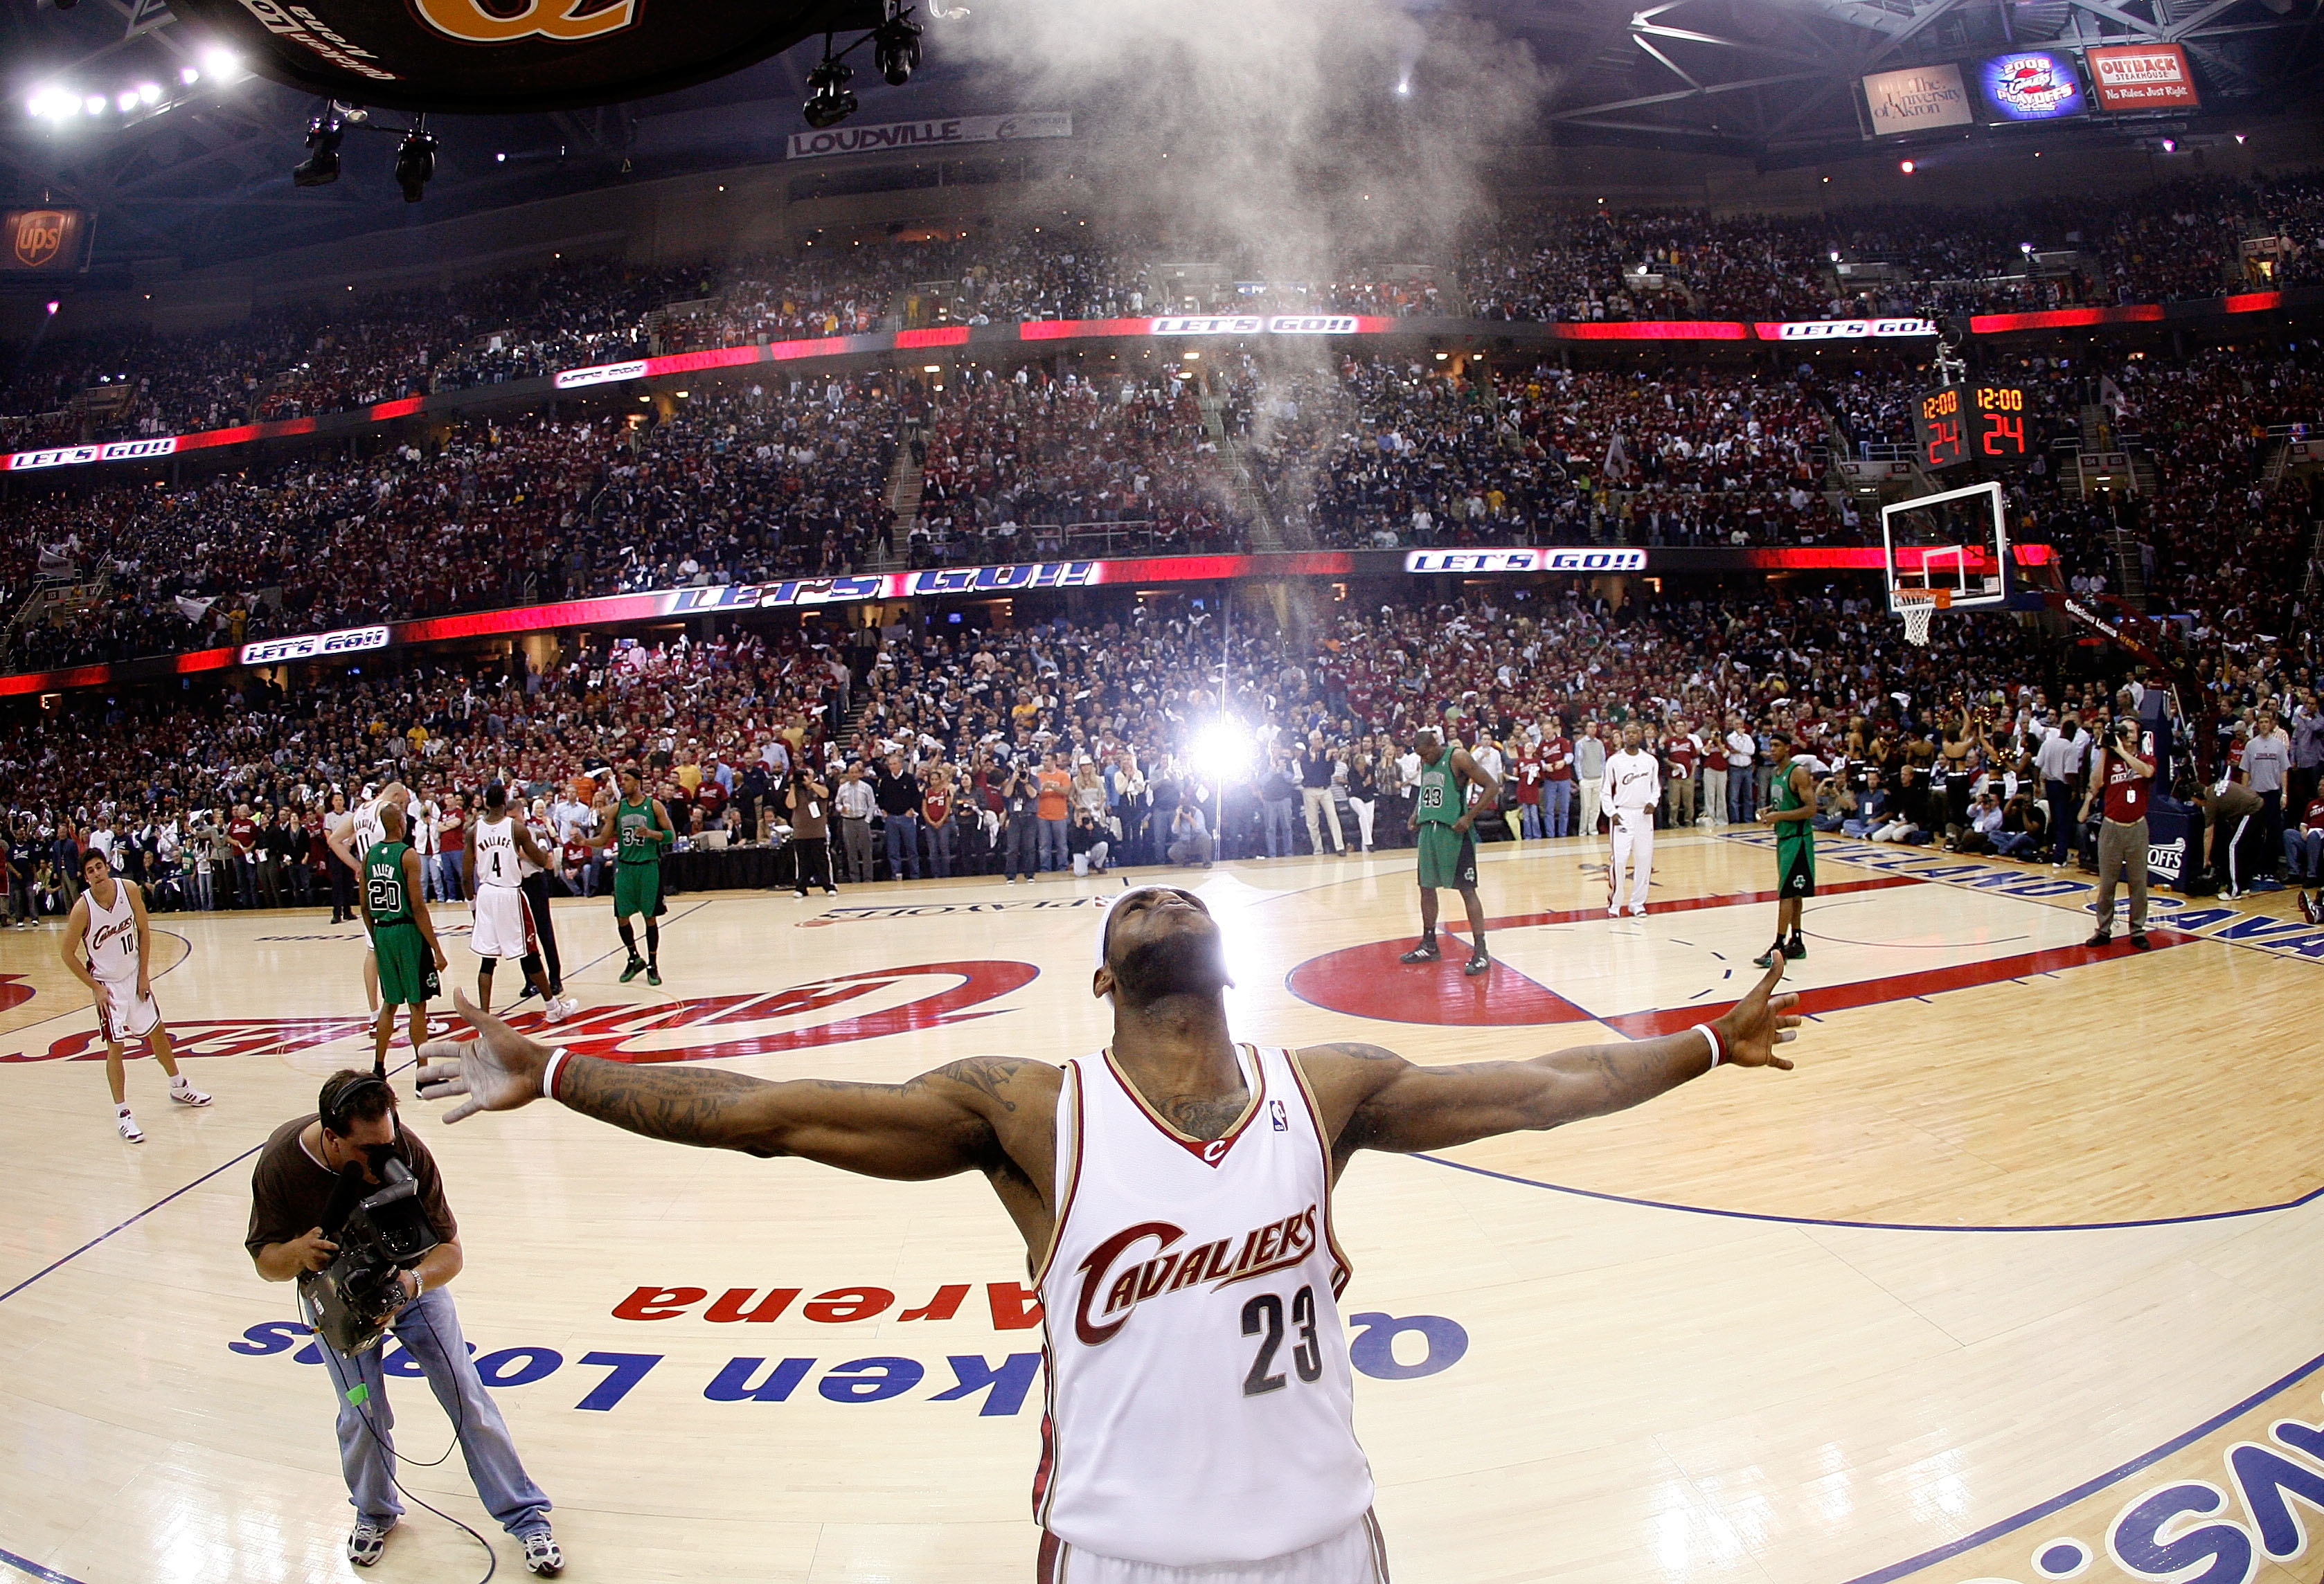 CLEVELAND - MAY 12:  LeBron James #23 of the Cleveland Cavaliers goes through his pregame ritual of applying powder to his hands and throwing it up in the air against the Boston Celtics in Game Four of the 2008 NBA Eastern Conference Semifinals on May 12,